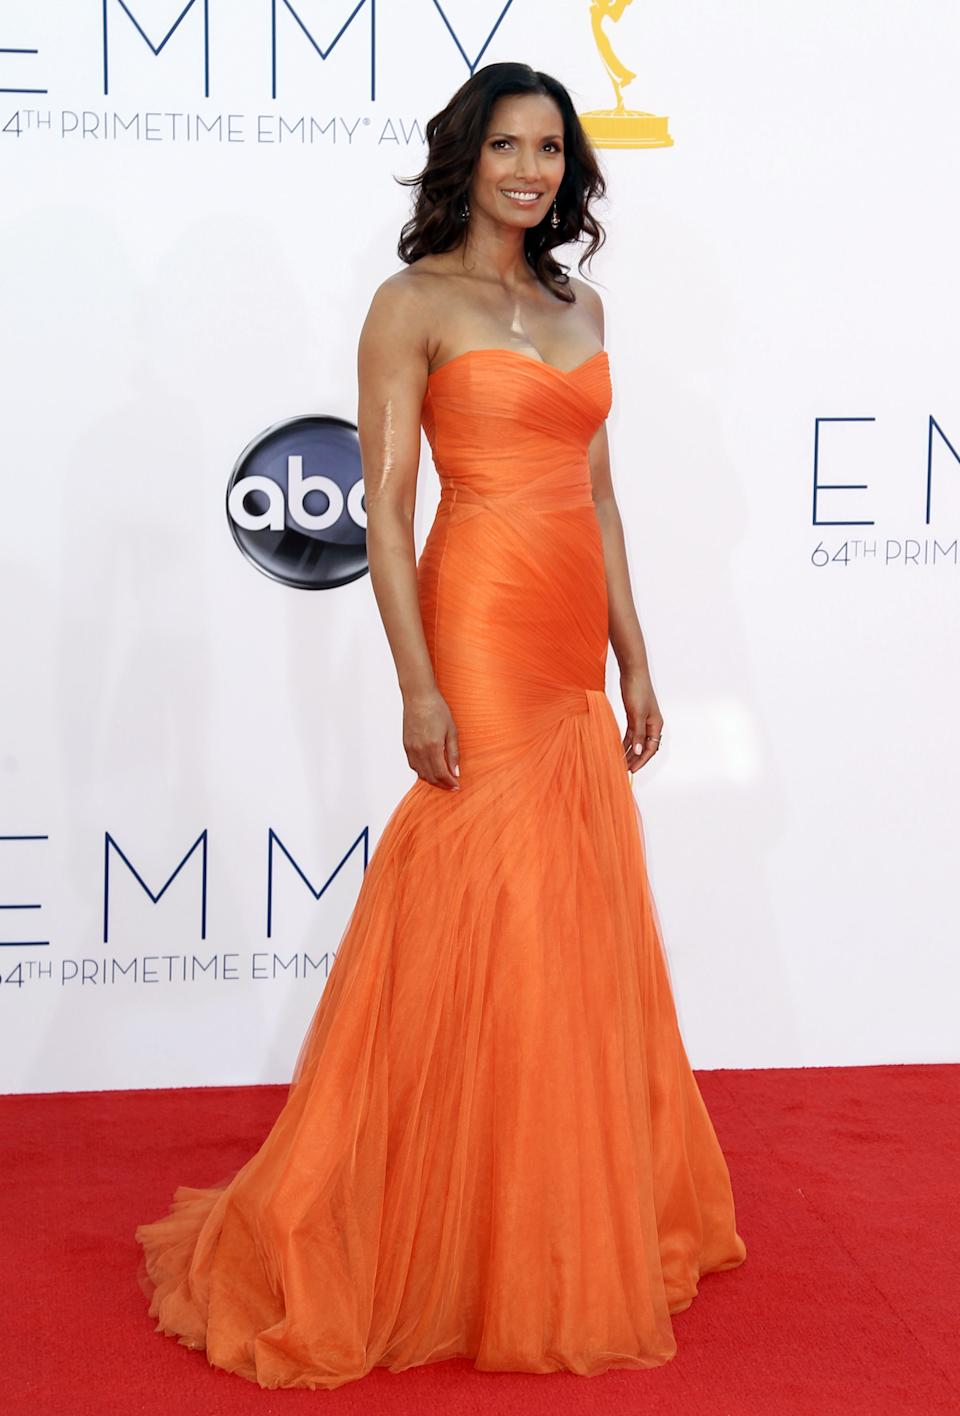 Padma Lakshmi arrives at the 64th Primetime Emmy Awards at the Nokia Theatre on Sunday, Sept. 23, 2012, in Los Angeles. (Photo by Matt Sayles/Invision/AP)